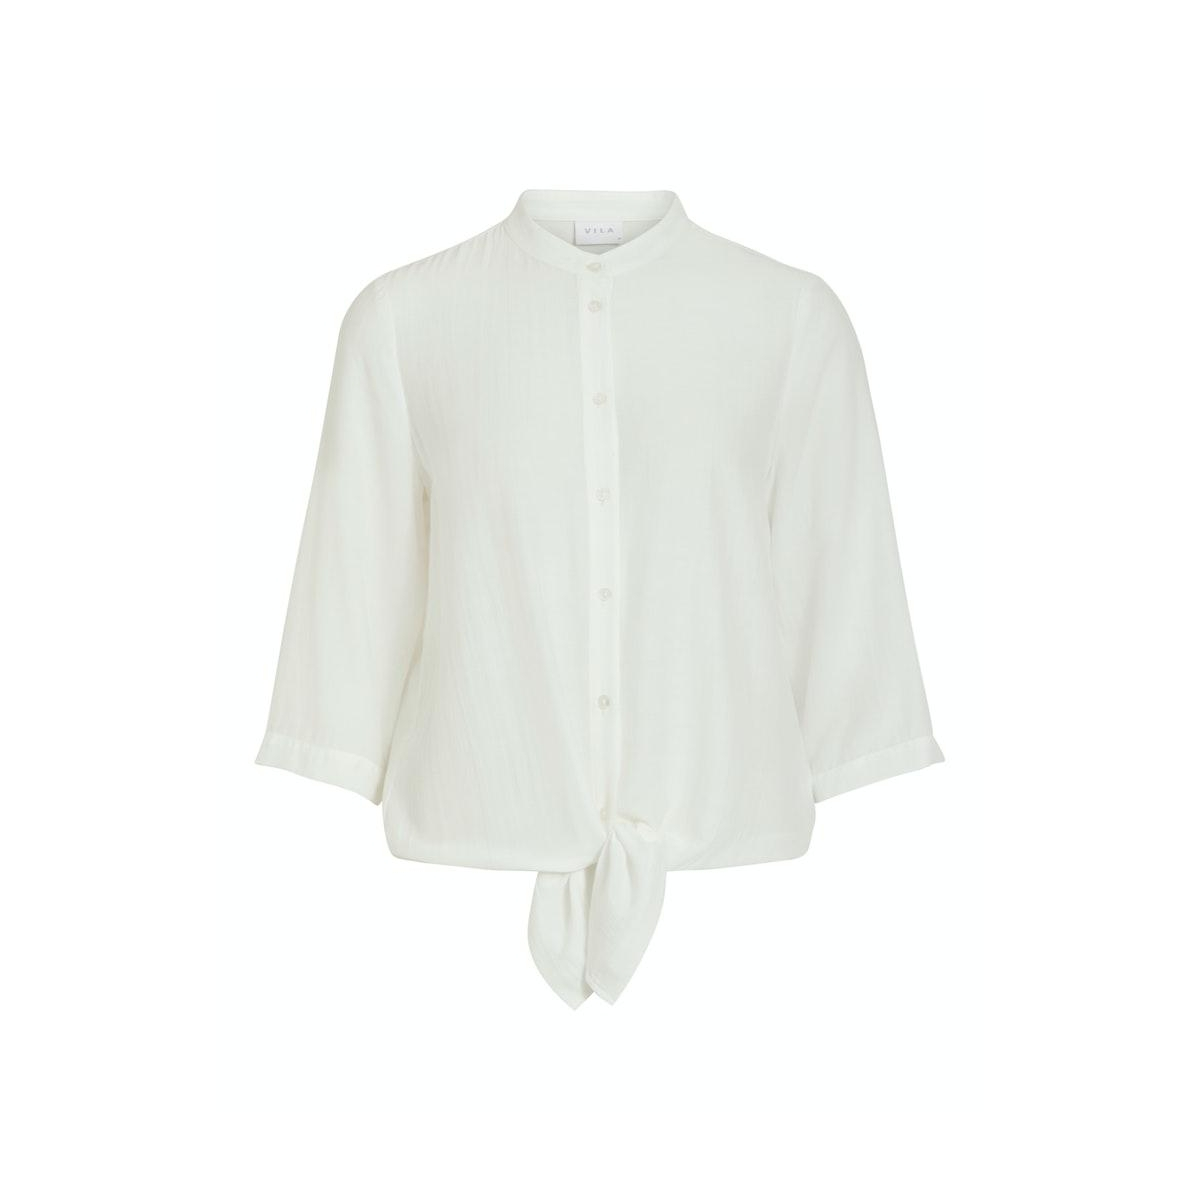 vithoma 3/4 tie shirt - fav nx 14059005 vila blouse snow white